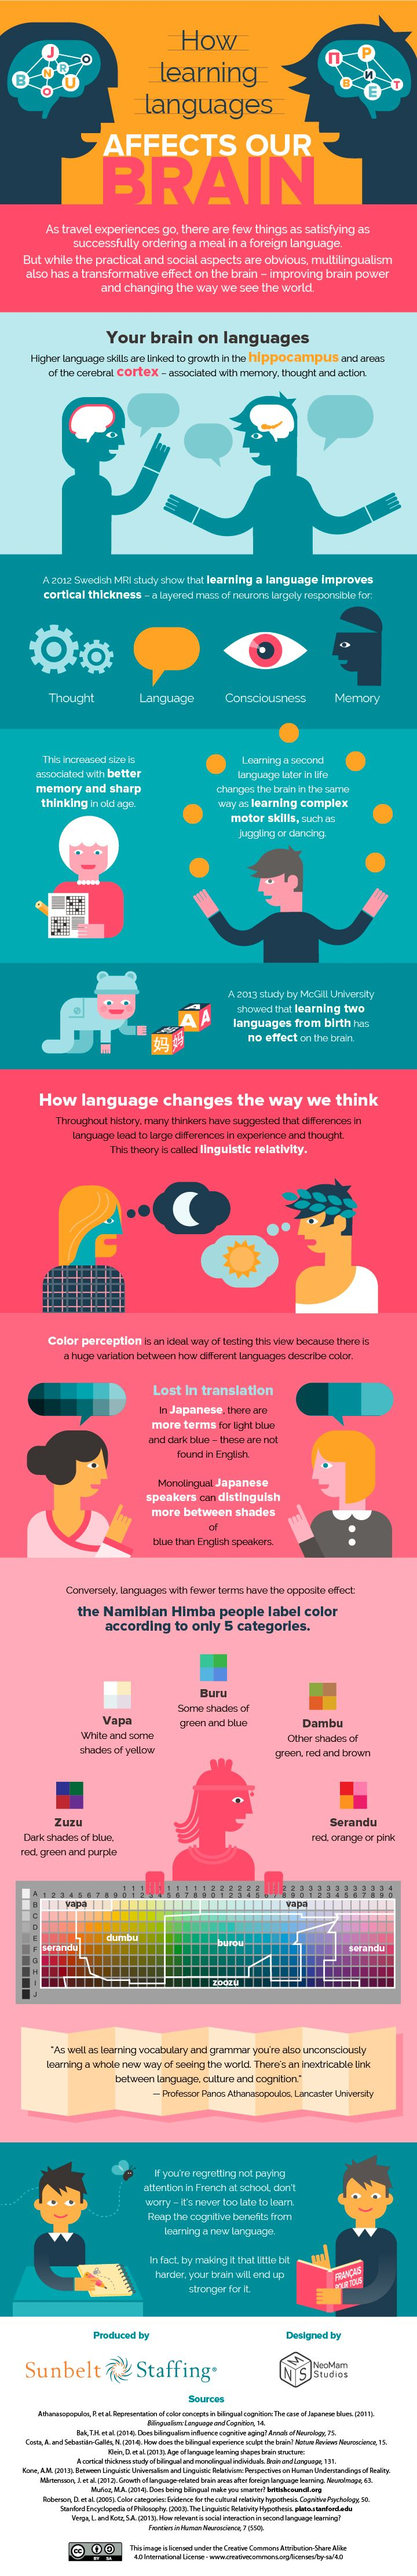 best ideas about learn foreign language language how learning languages affects our brain infographic elearninginfographics com